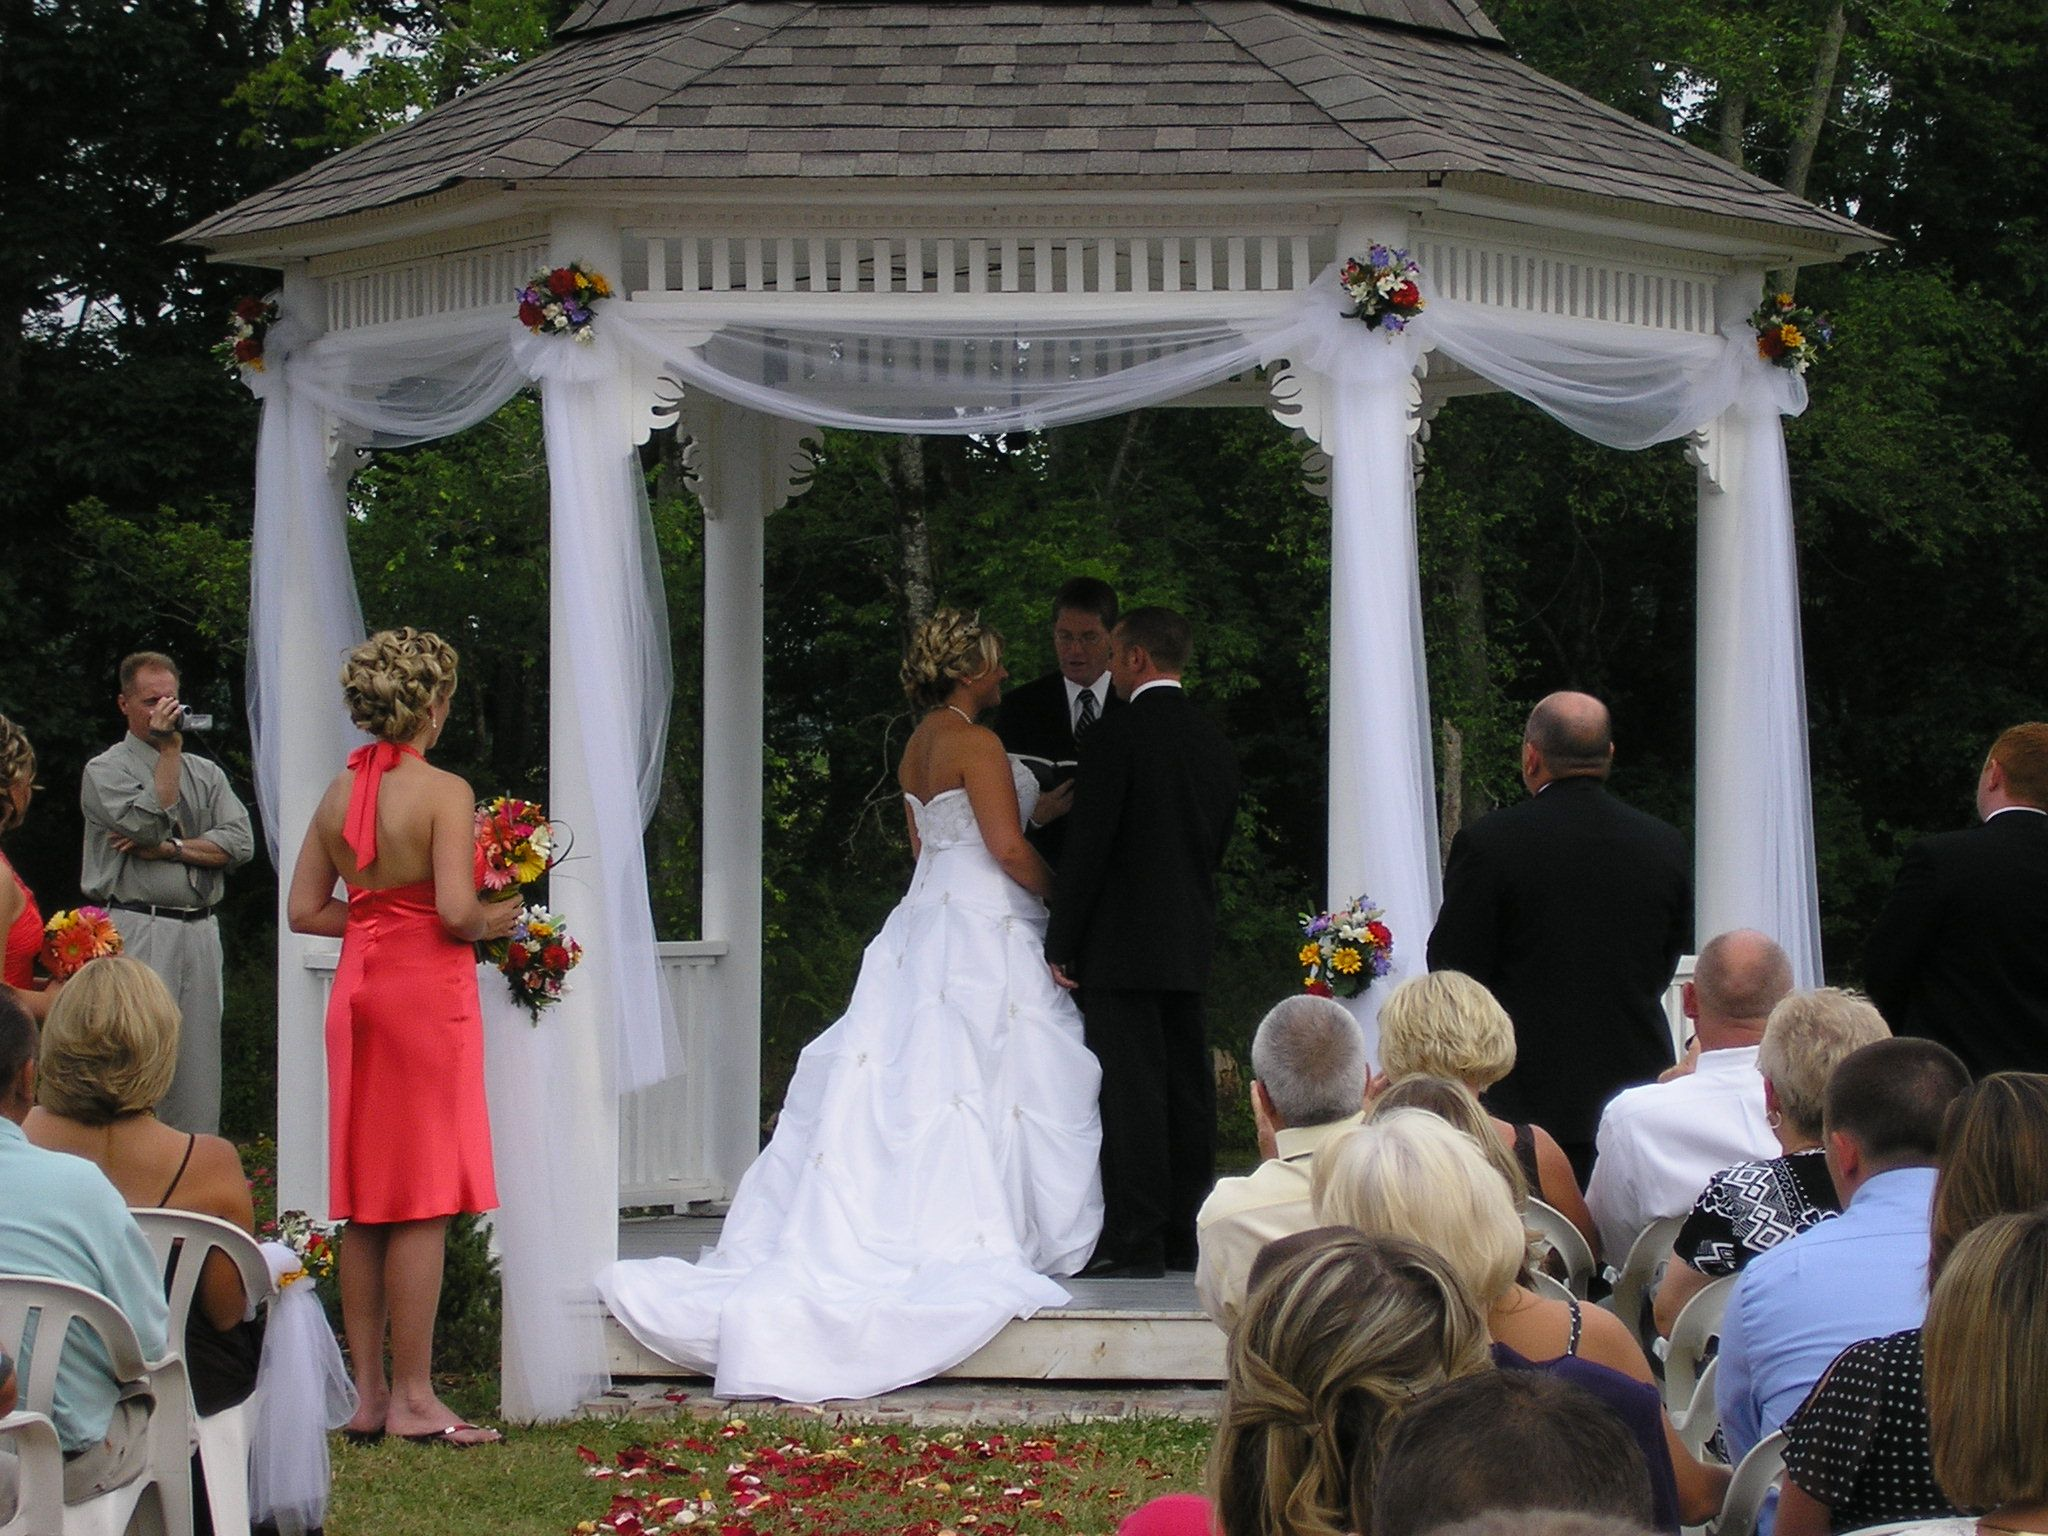 Wedding gazebo decorations a little white tulle and for Outdoor wedding gazebo decorating ideas